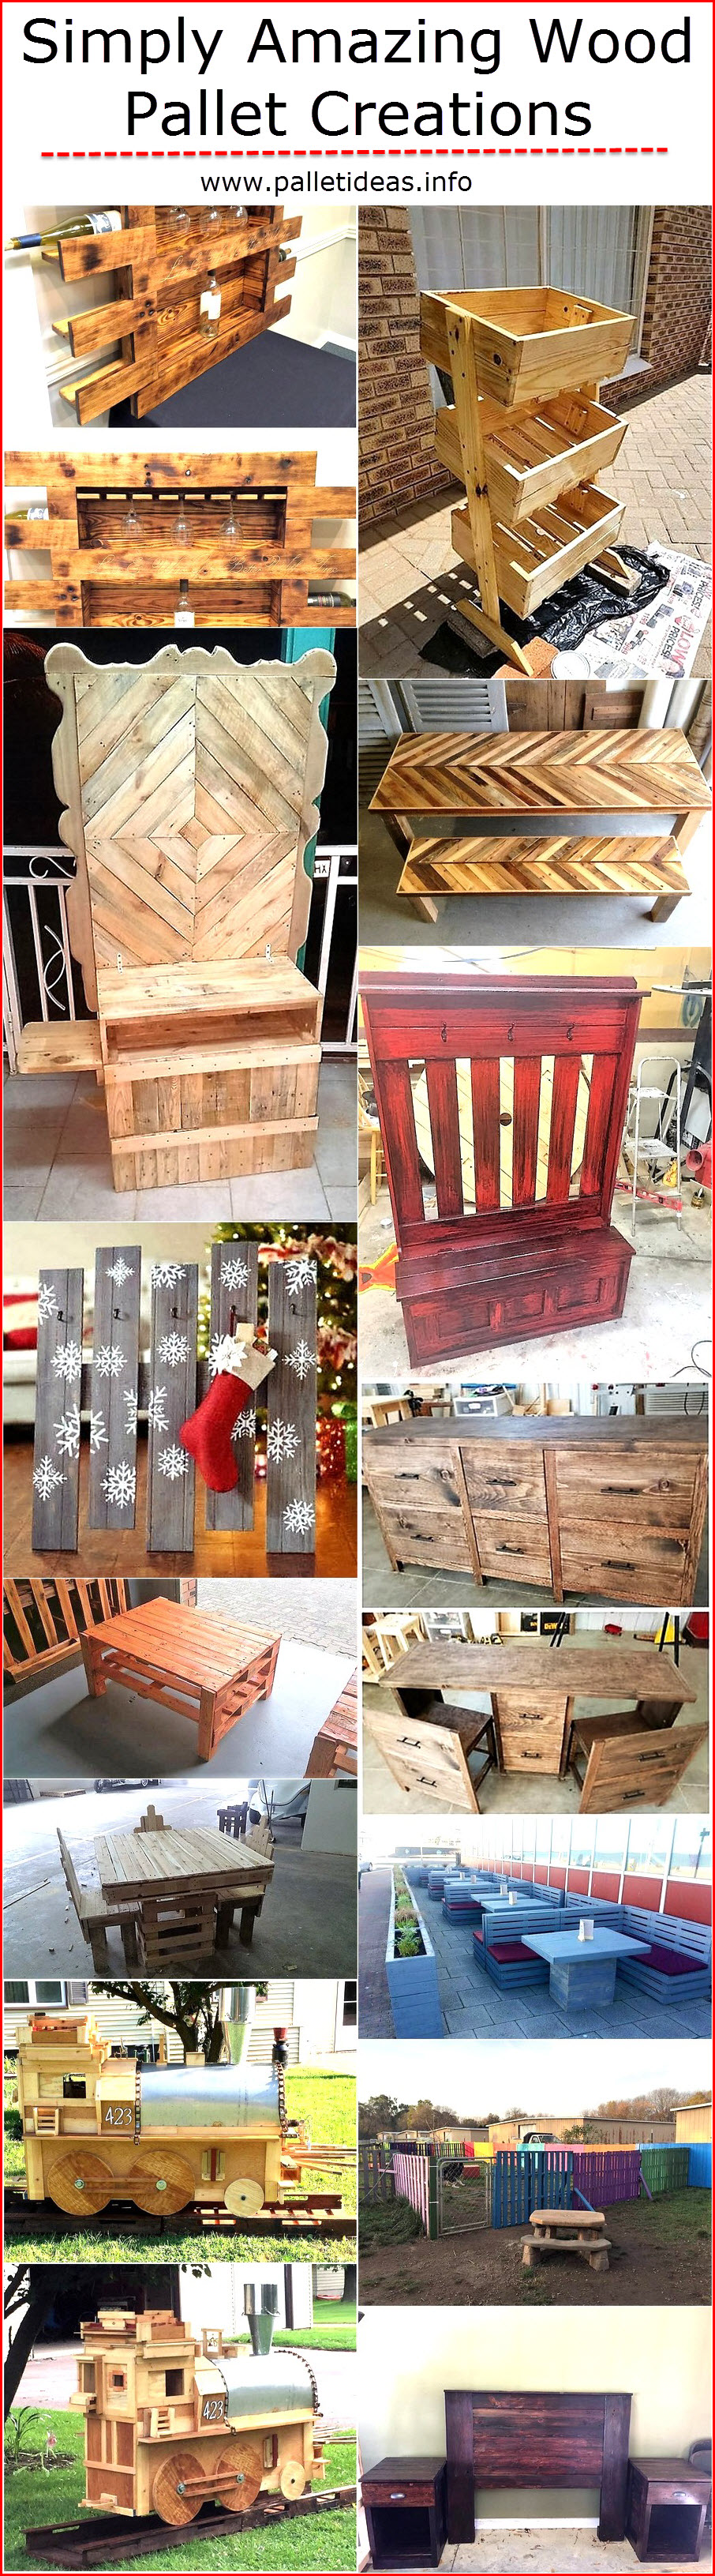 simply-amazing-wood-pallet-creations